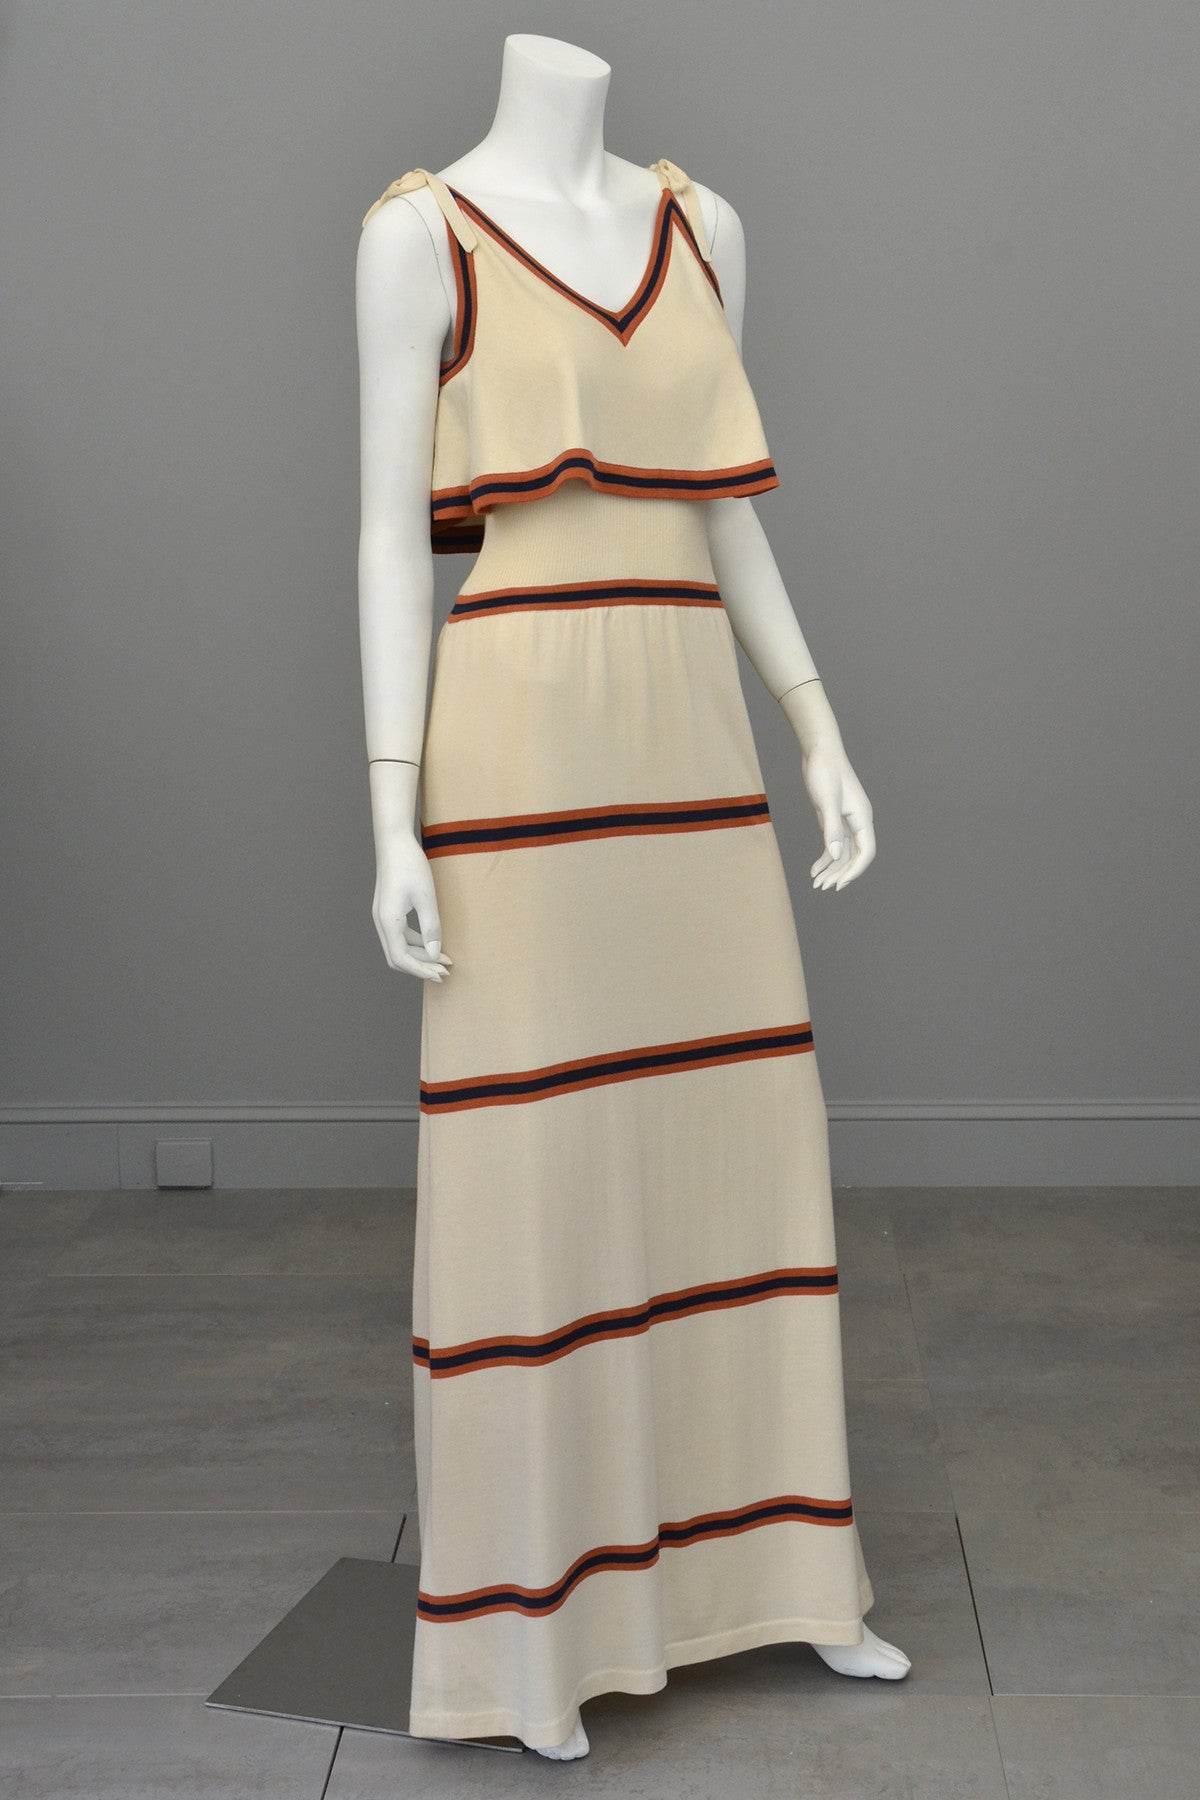 1970s Knit Maxi Dress with Flounce Top, Navy and Nutmeg Stripes, Italian knit by Crissa